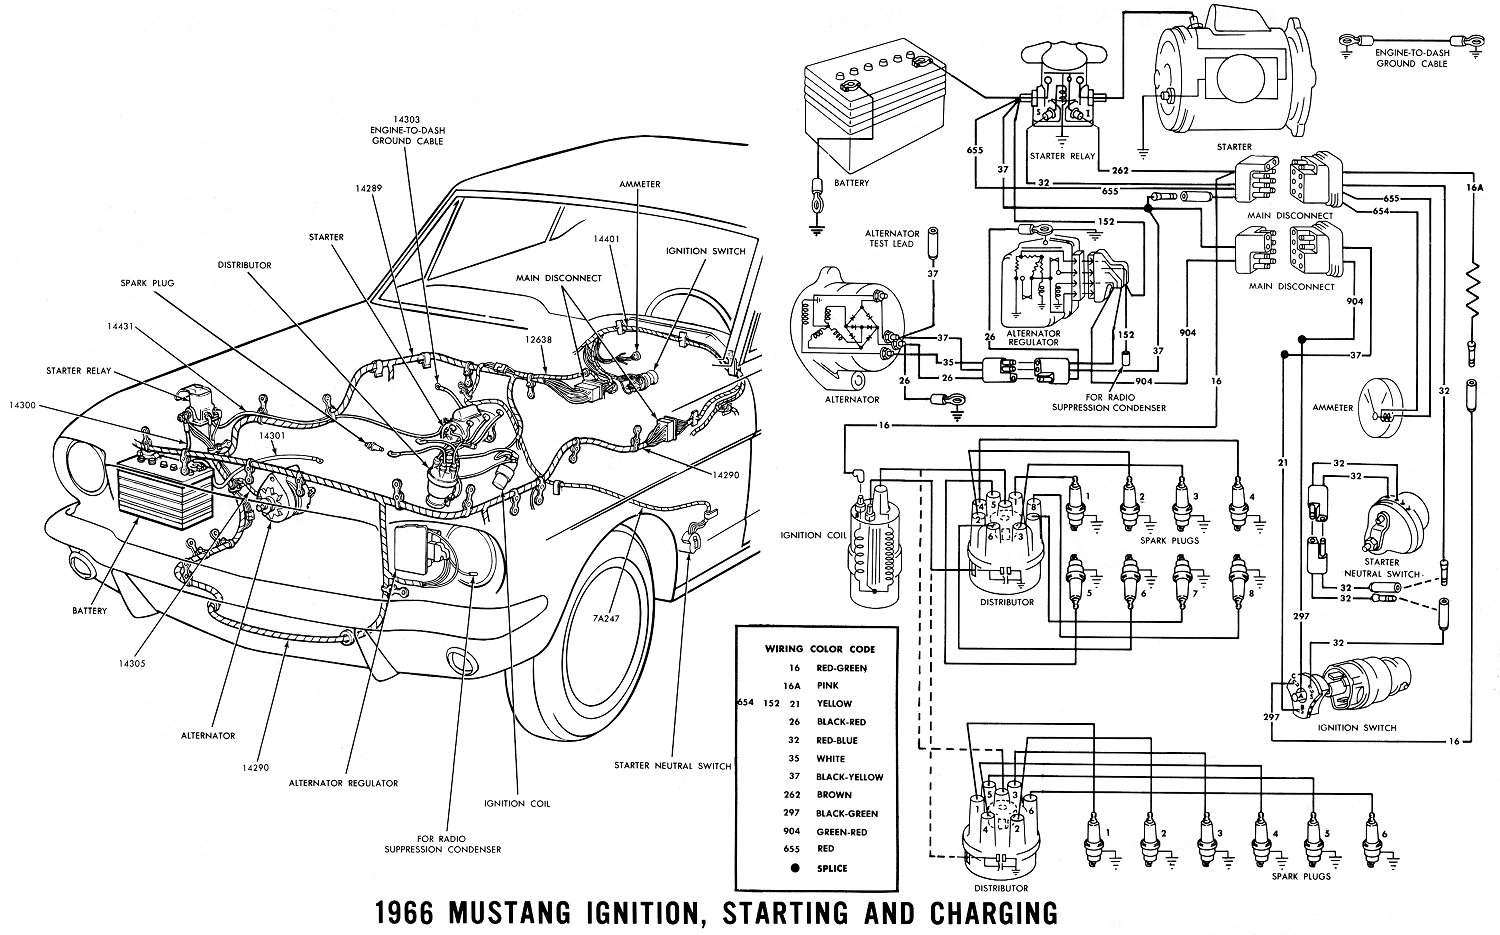 85 Mustang Dash Wiring Diagram Electronic Diagrams 1989 F150 Alternator Harness 1966 Ford V8 Electrical Schematics